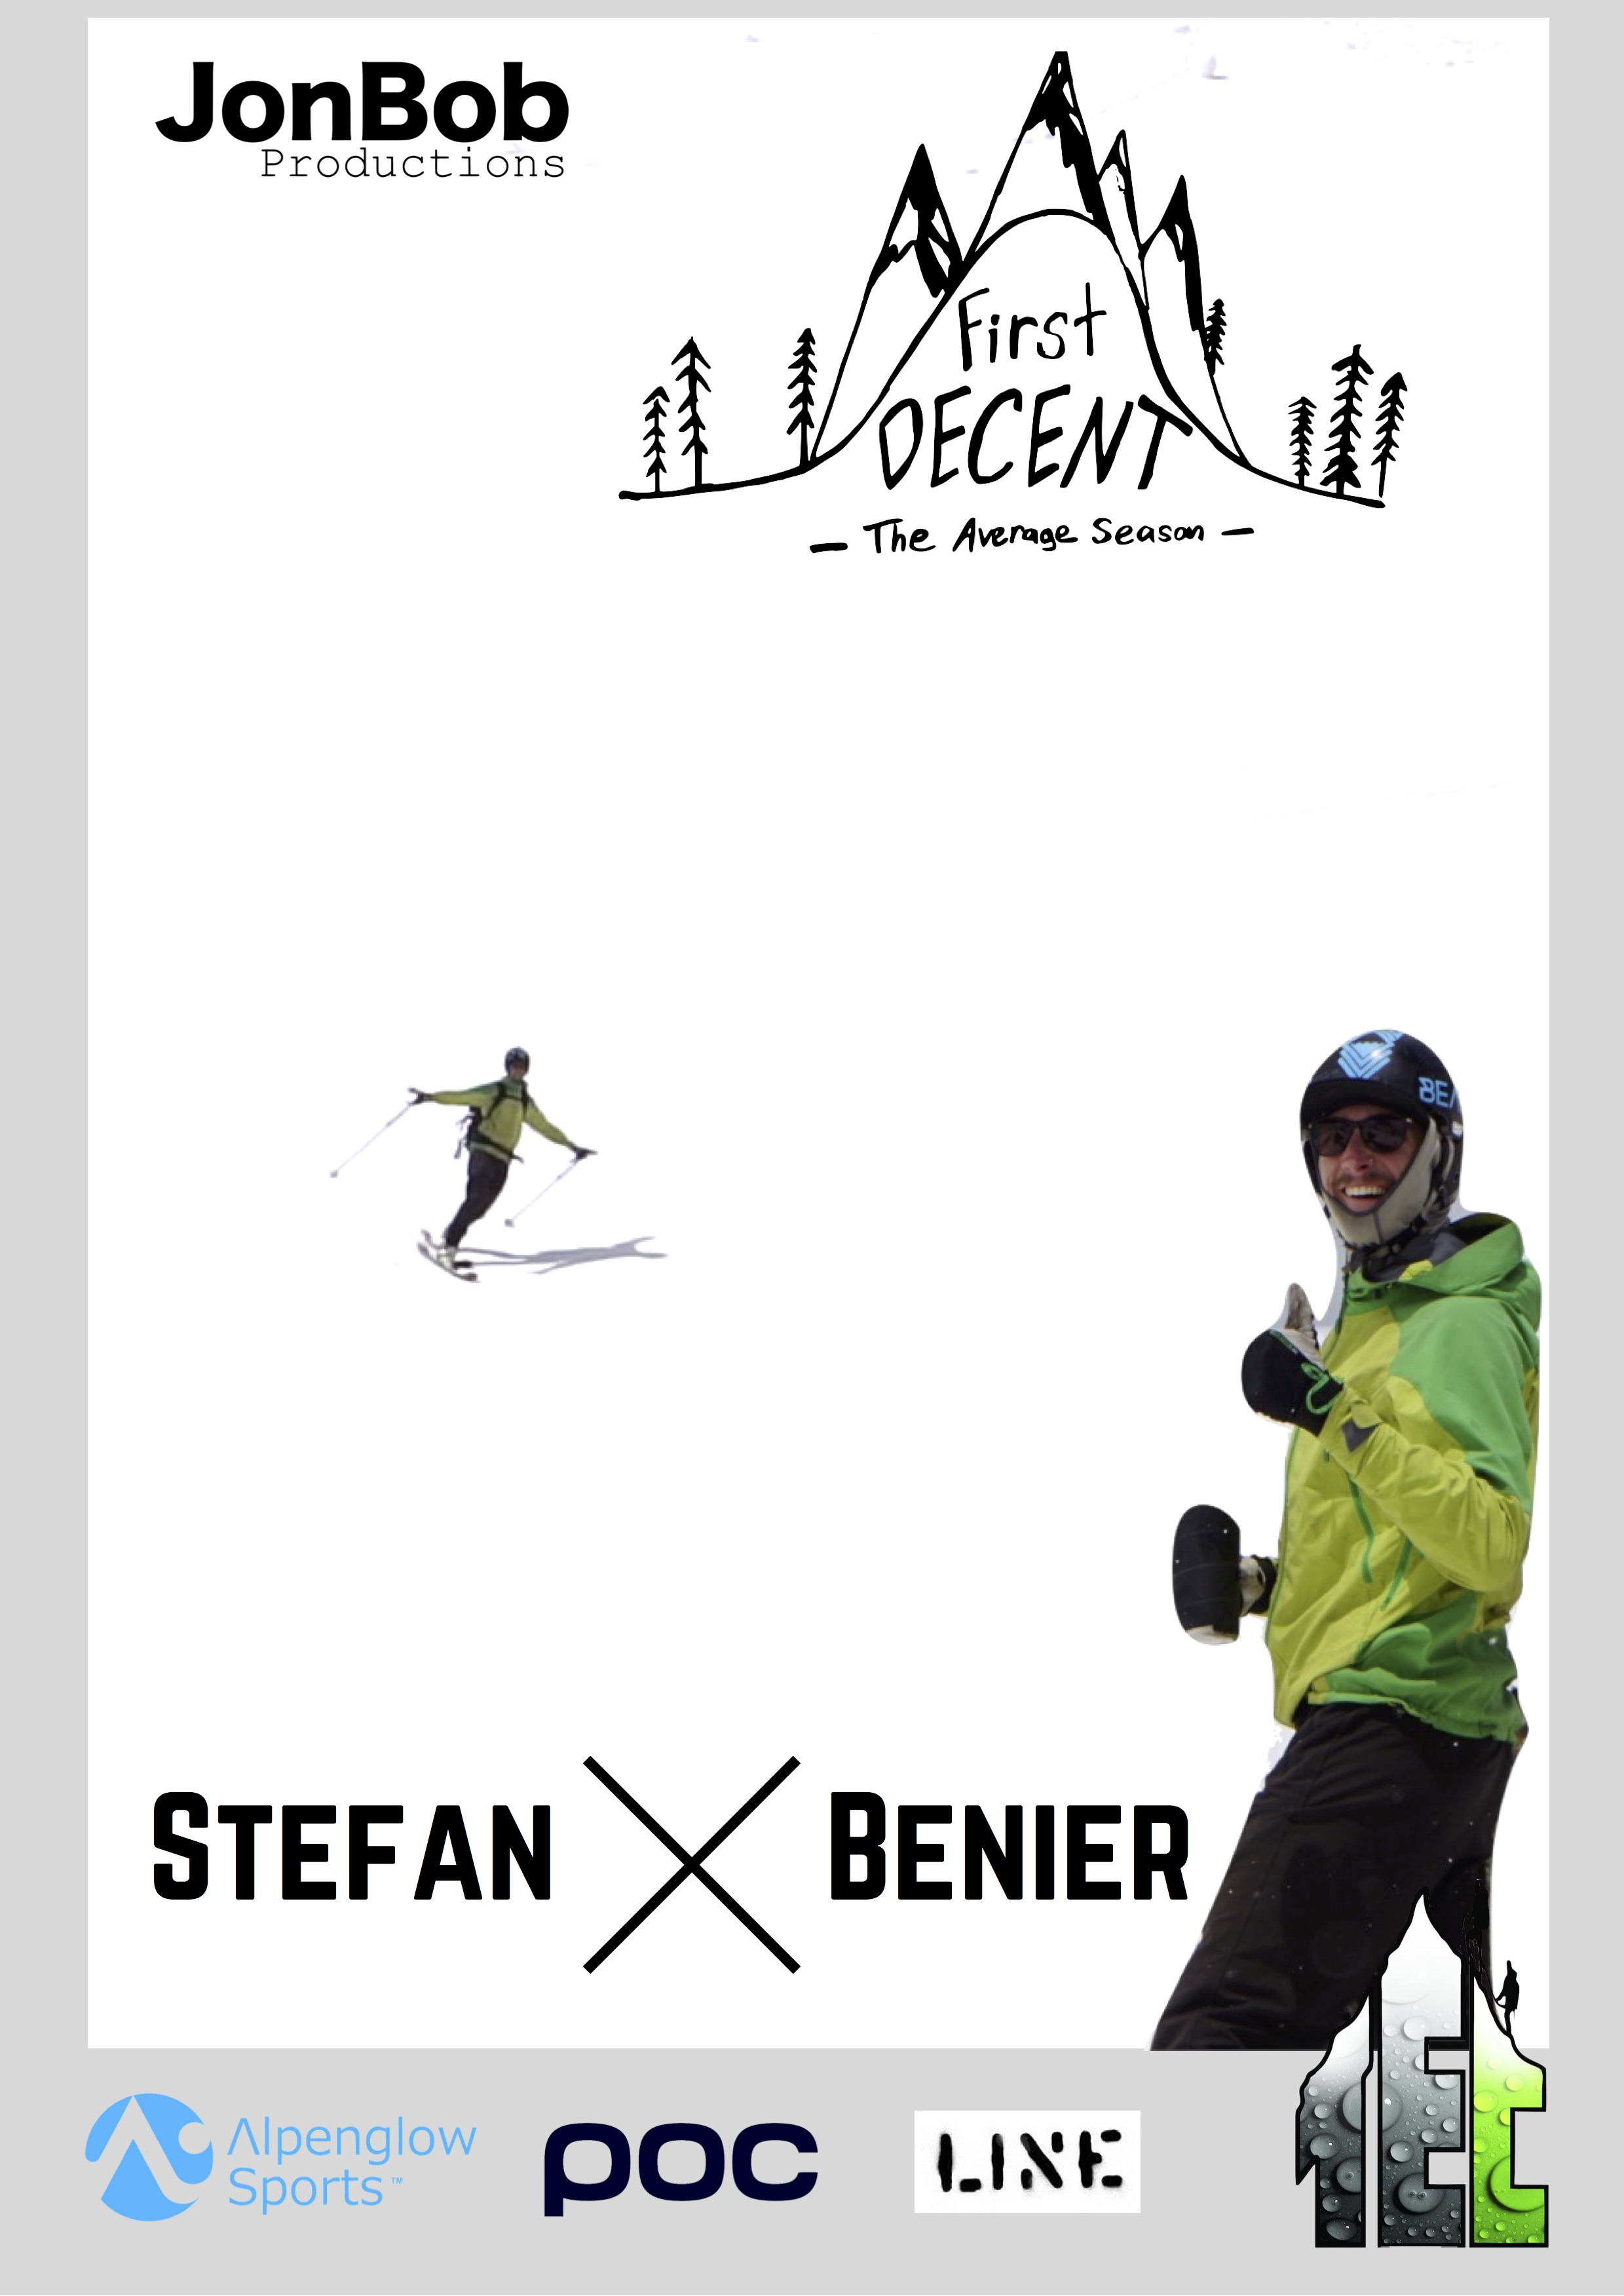 Stefan First Decent Poster.jpg